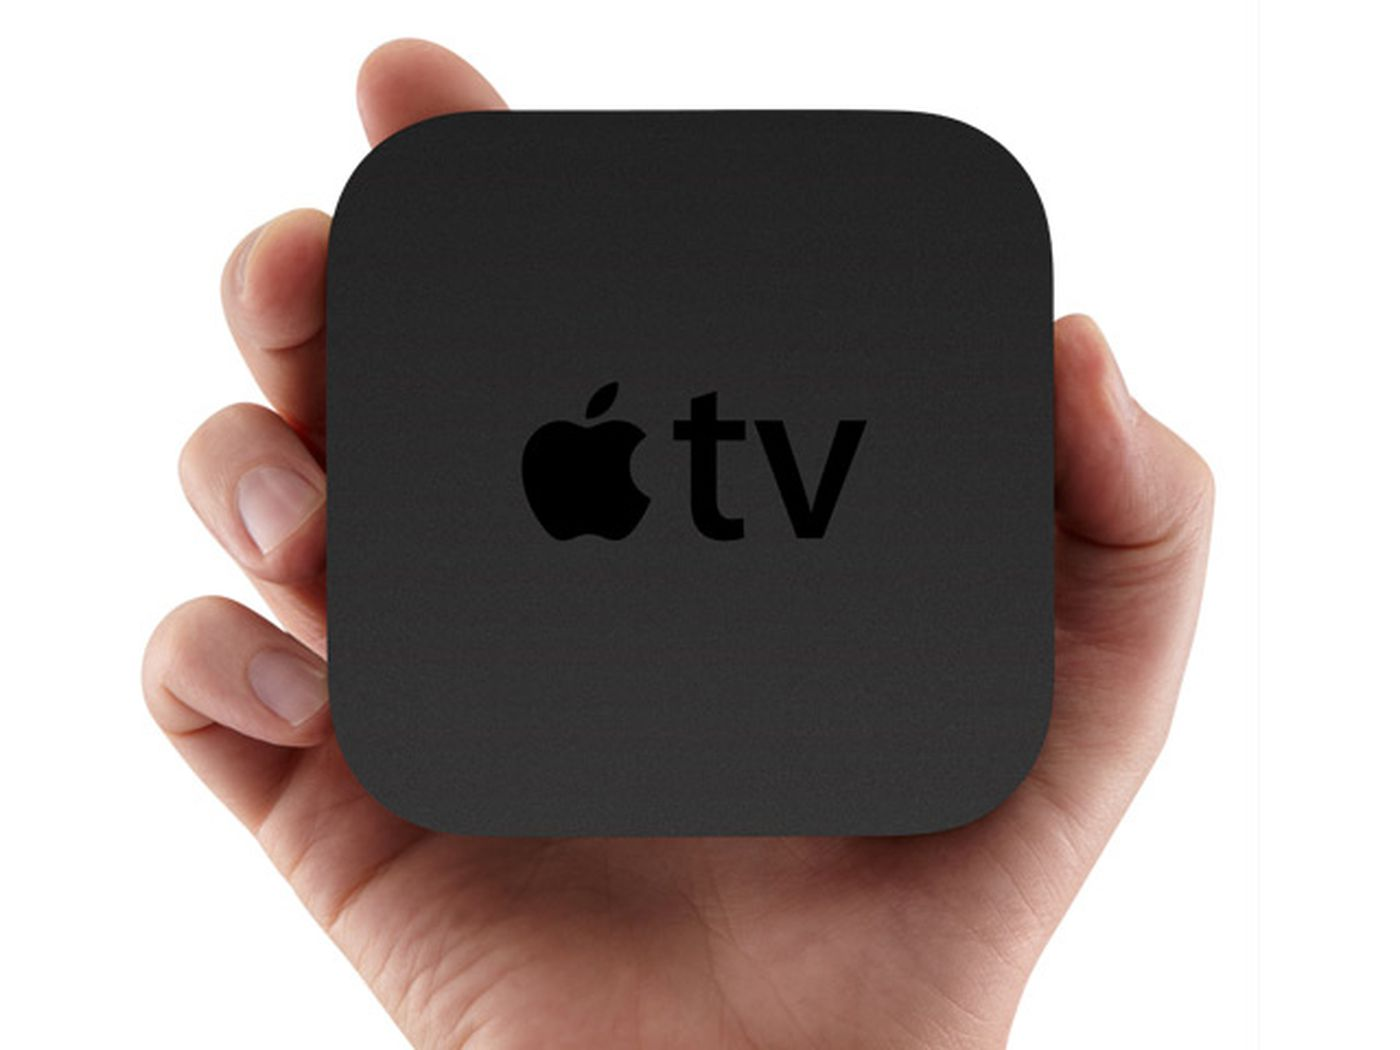 The new Apple TV 4K will be a much more powerful streaming box than